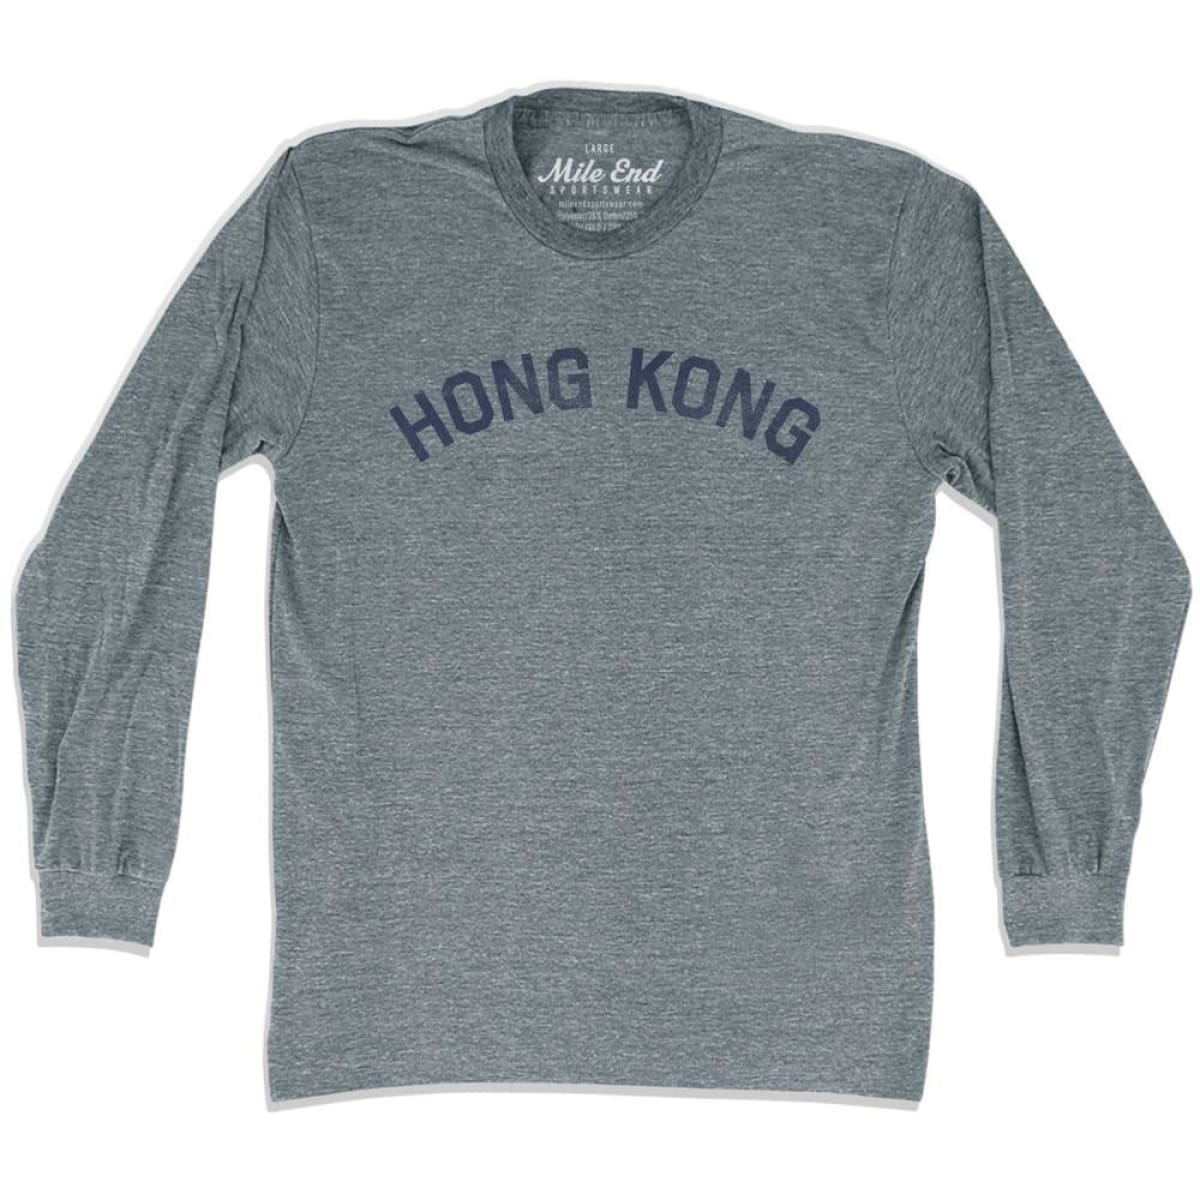 Hong Kong City Vintage Long Sleeve T-Shirt - Athletic Grey / Adult X-Small - Mile End City